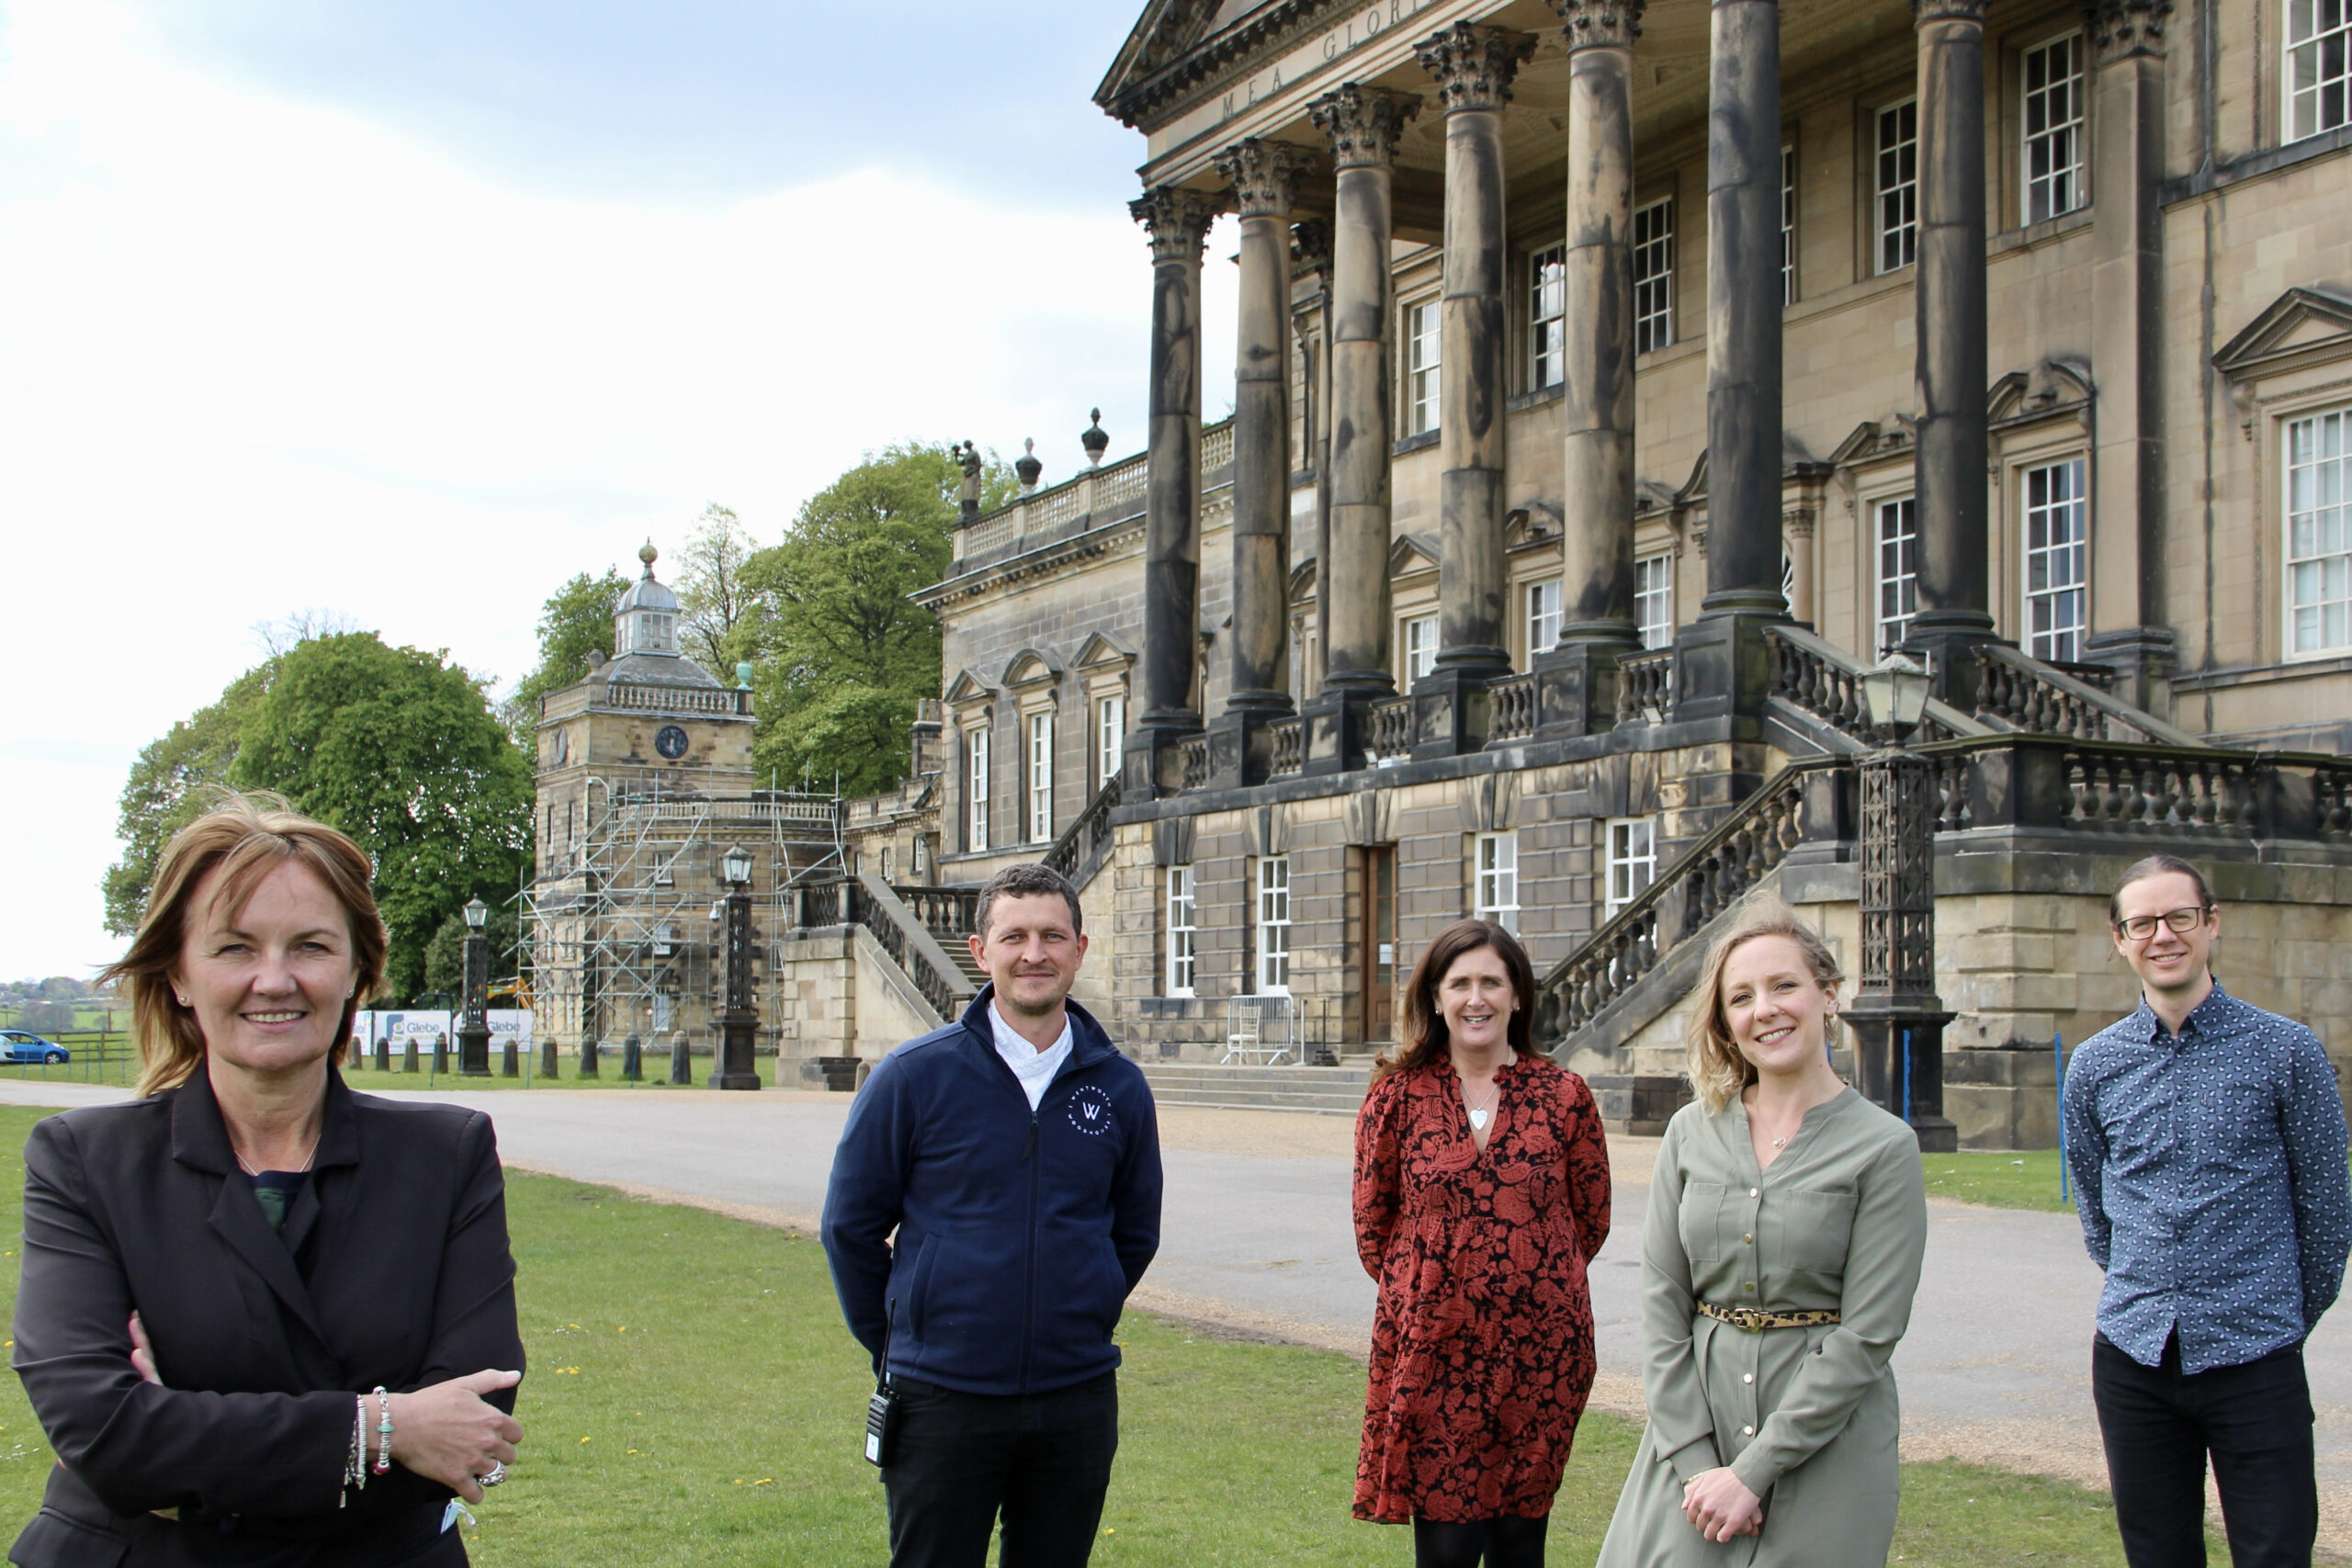 Sarah McLeod, CEO of Wentworth Woodhouse Preservation Trust, with new appointees LtoR Darren Procter, Head of Hospitality, Chief Operations Officer Paula Kaye, Events Manager Lydia Tickner and Head of Marketing and Digital Gabriel Morrison